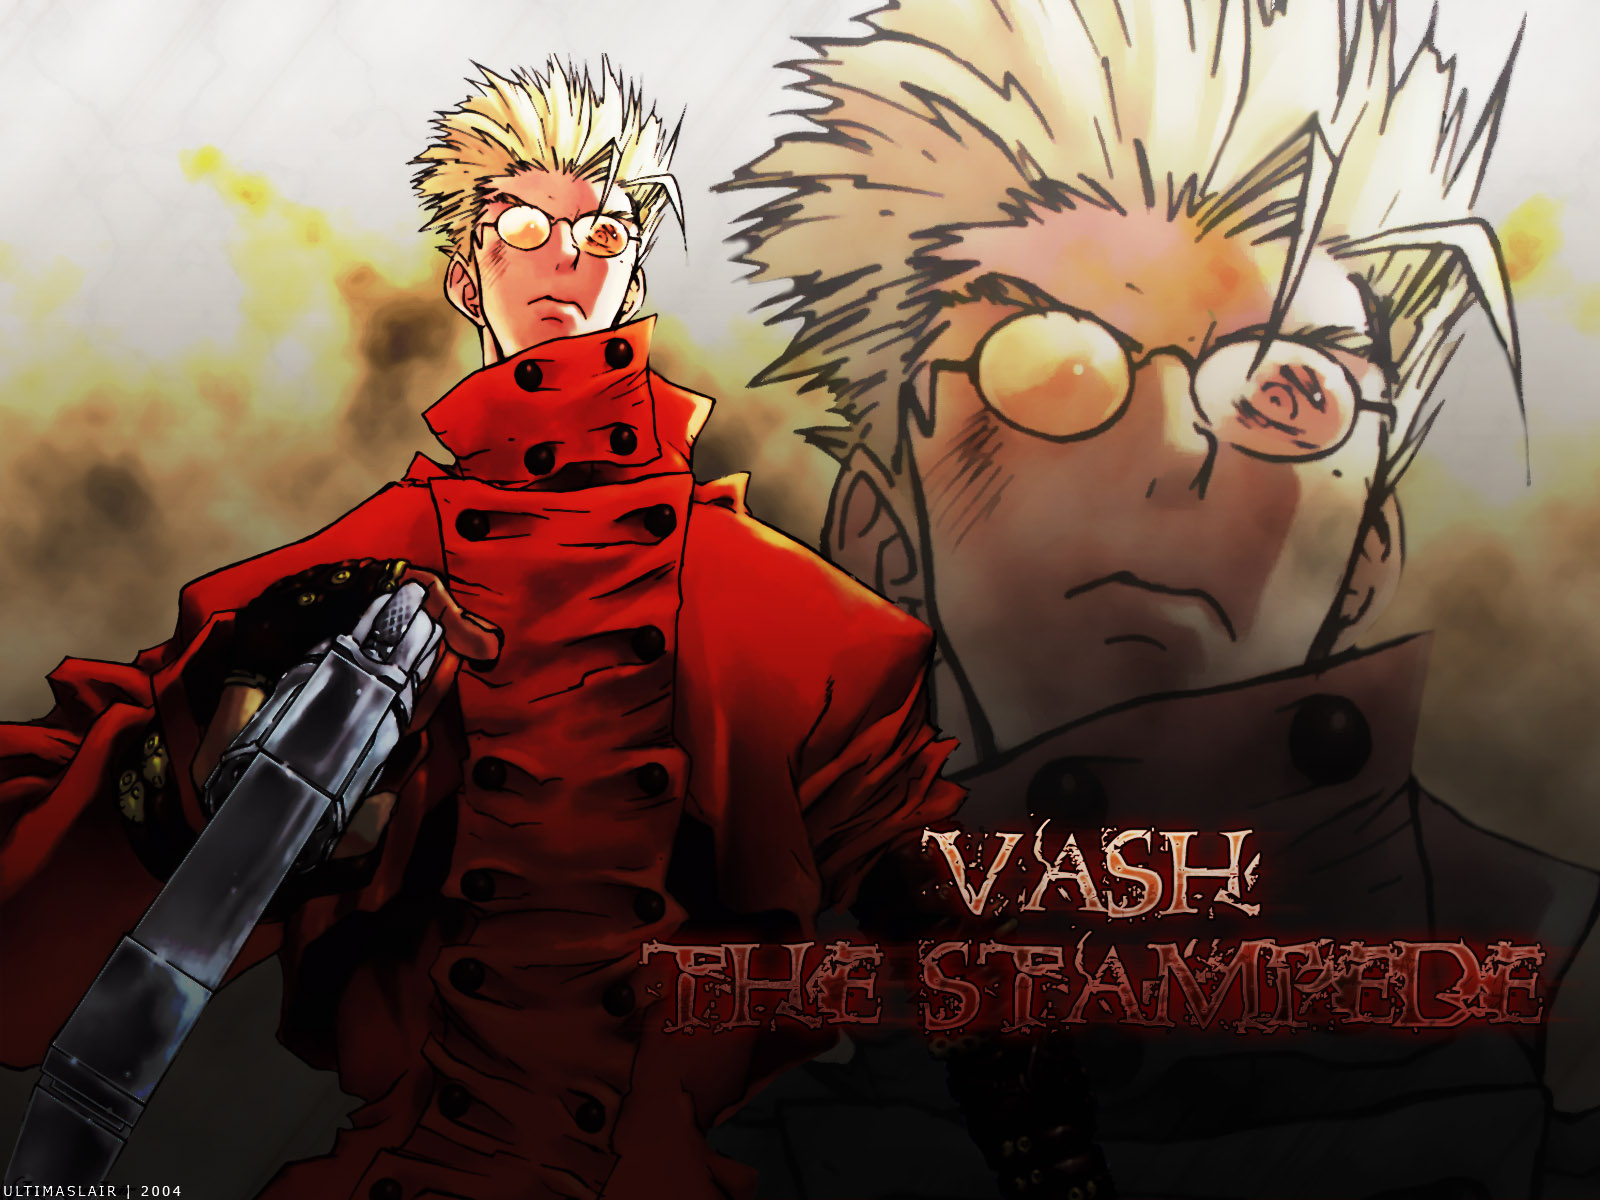 Anime - Trigun Wallpaper